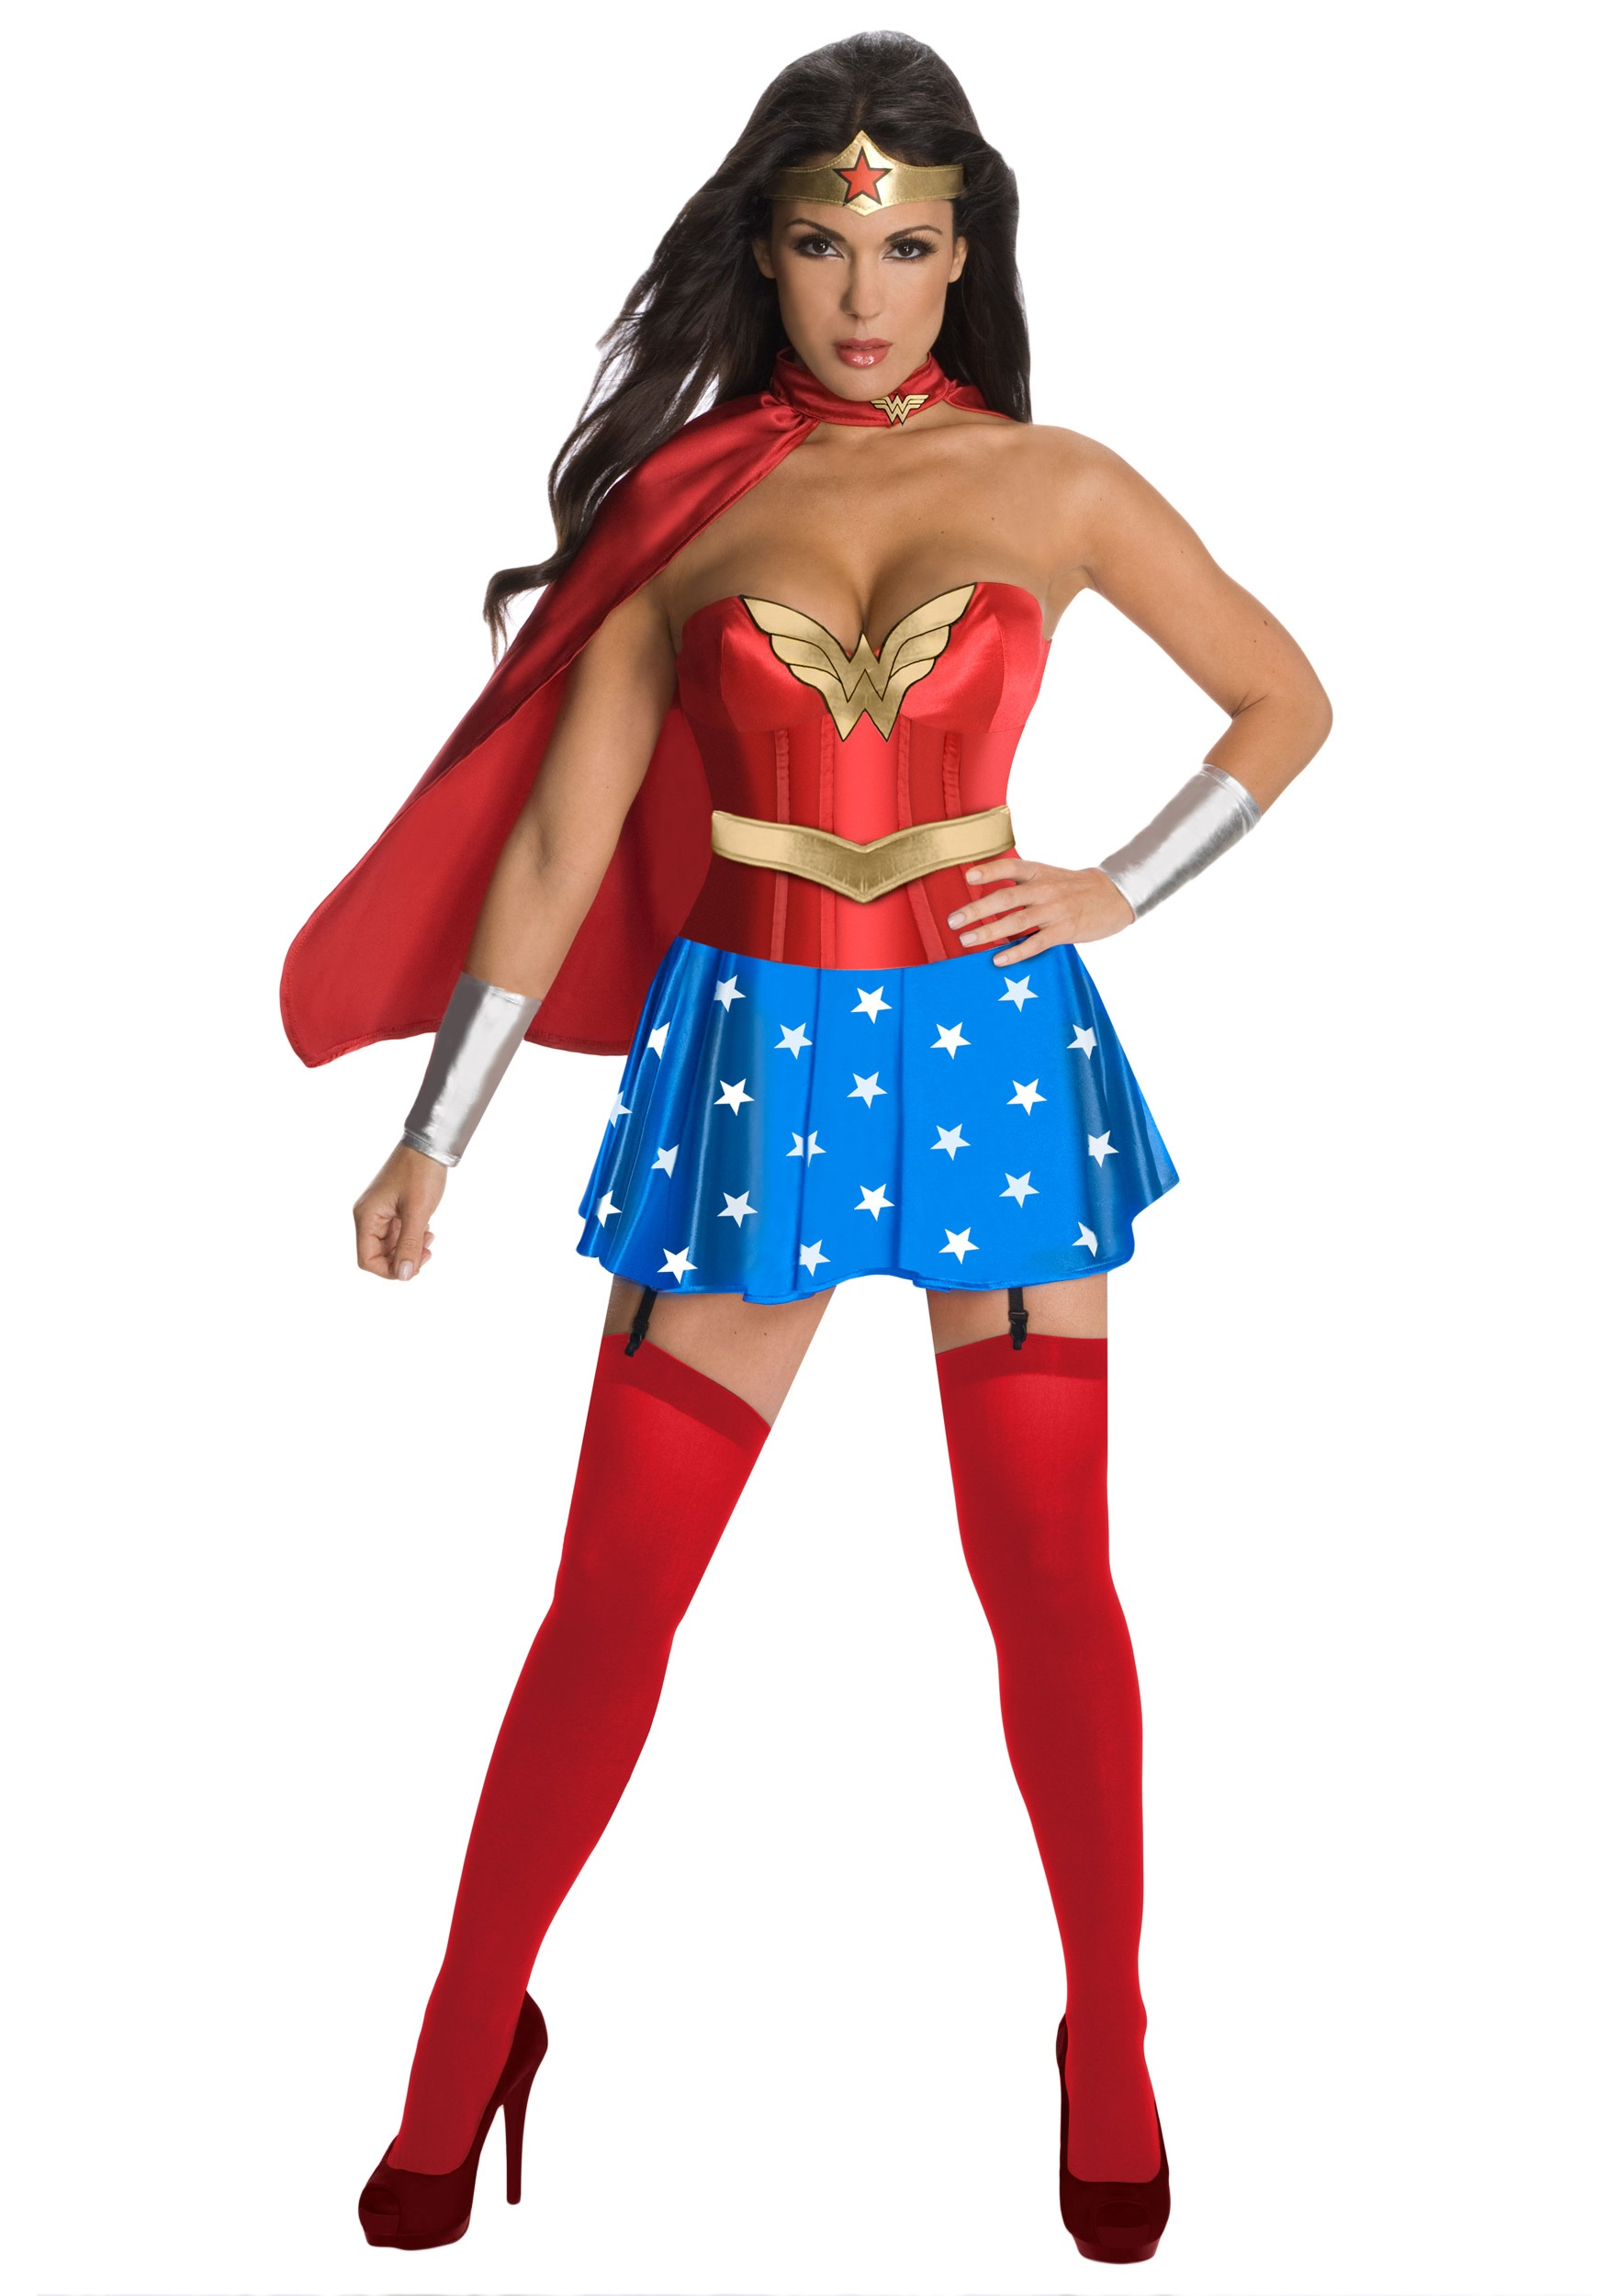 The office commercial wonder woman sexy corset costume solutioingenieria Gallery